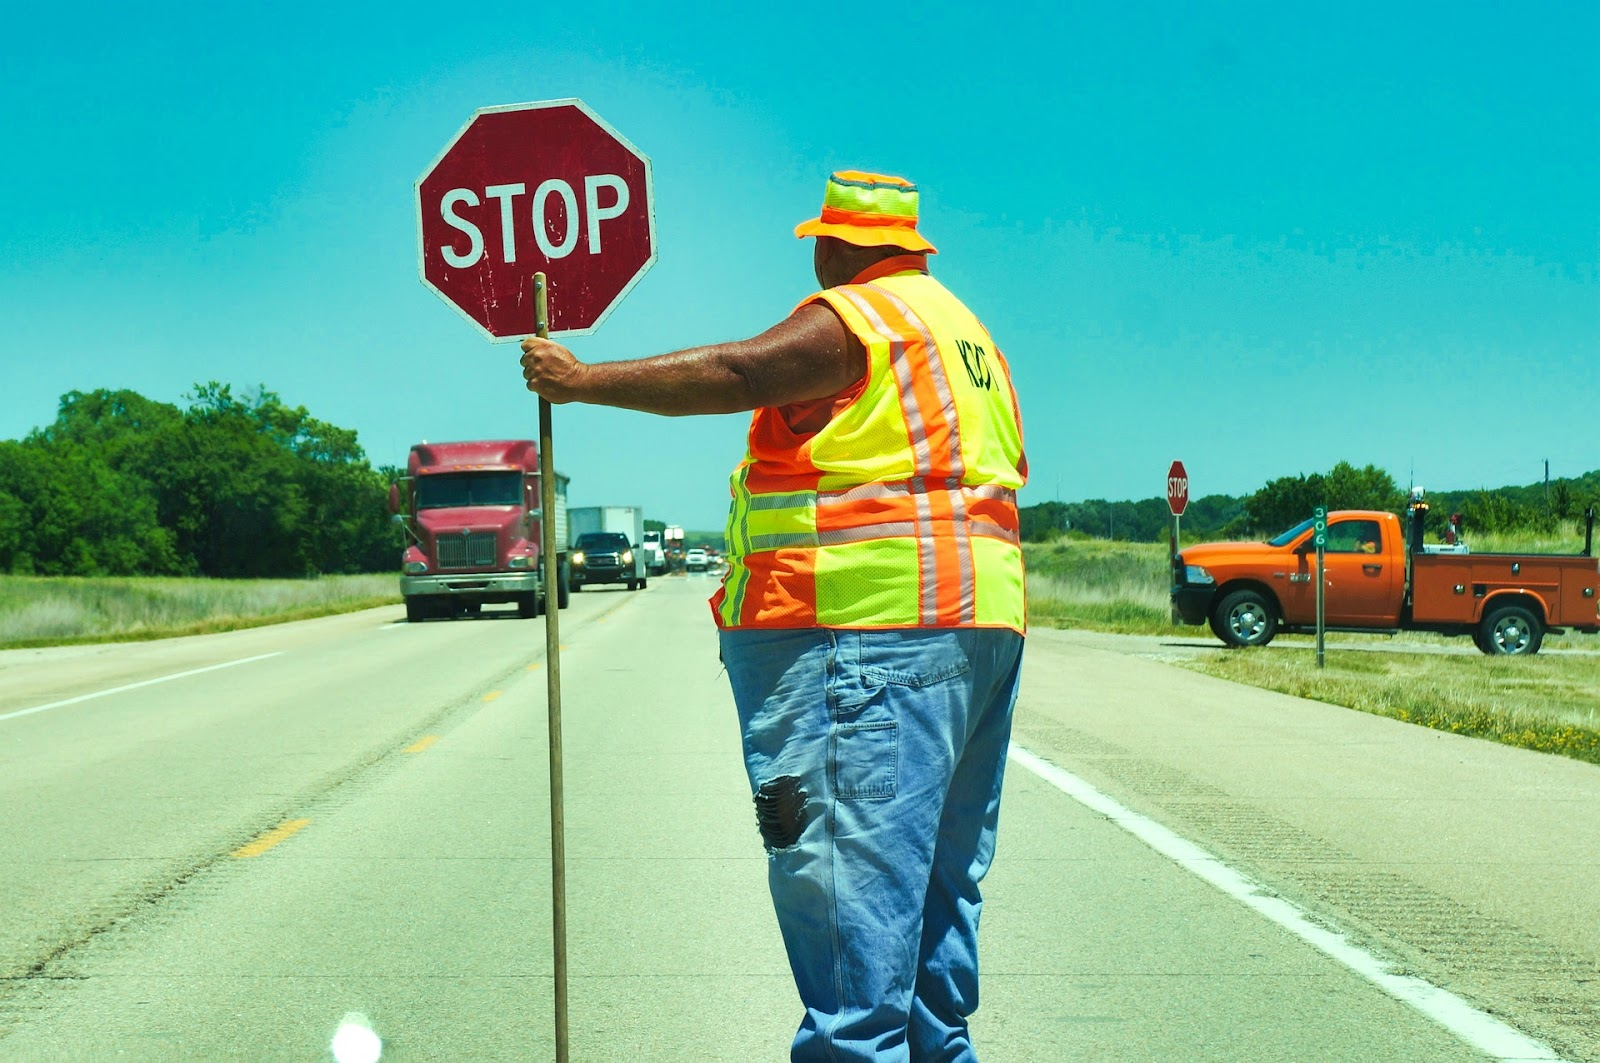 A worker on a highway holds a STOP sign while directing traffic.